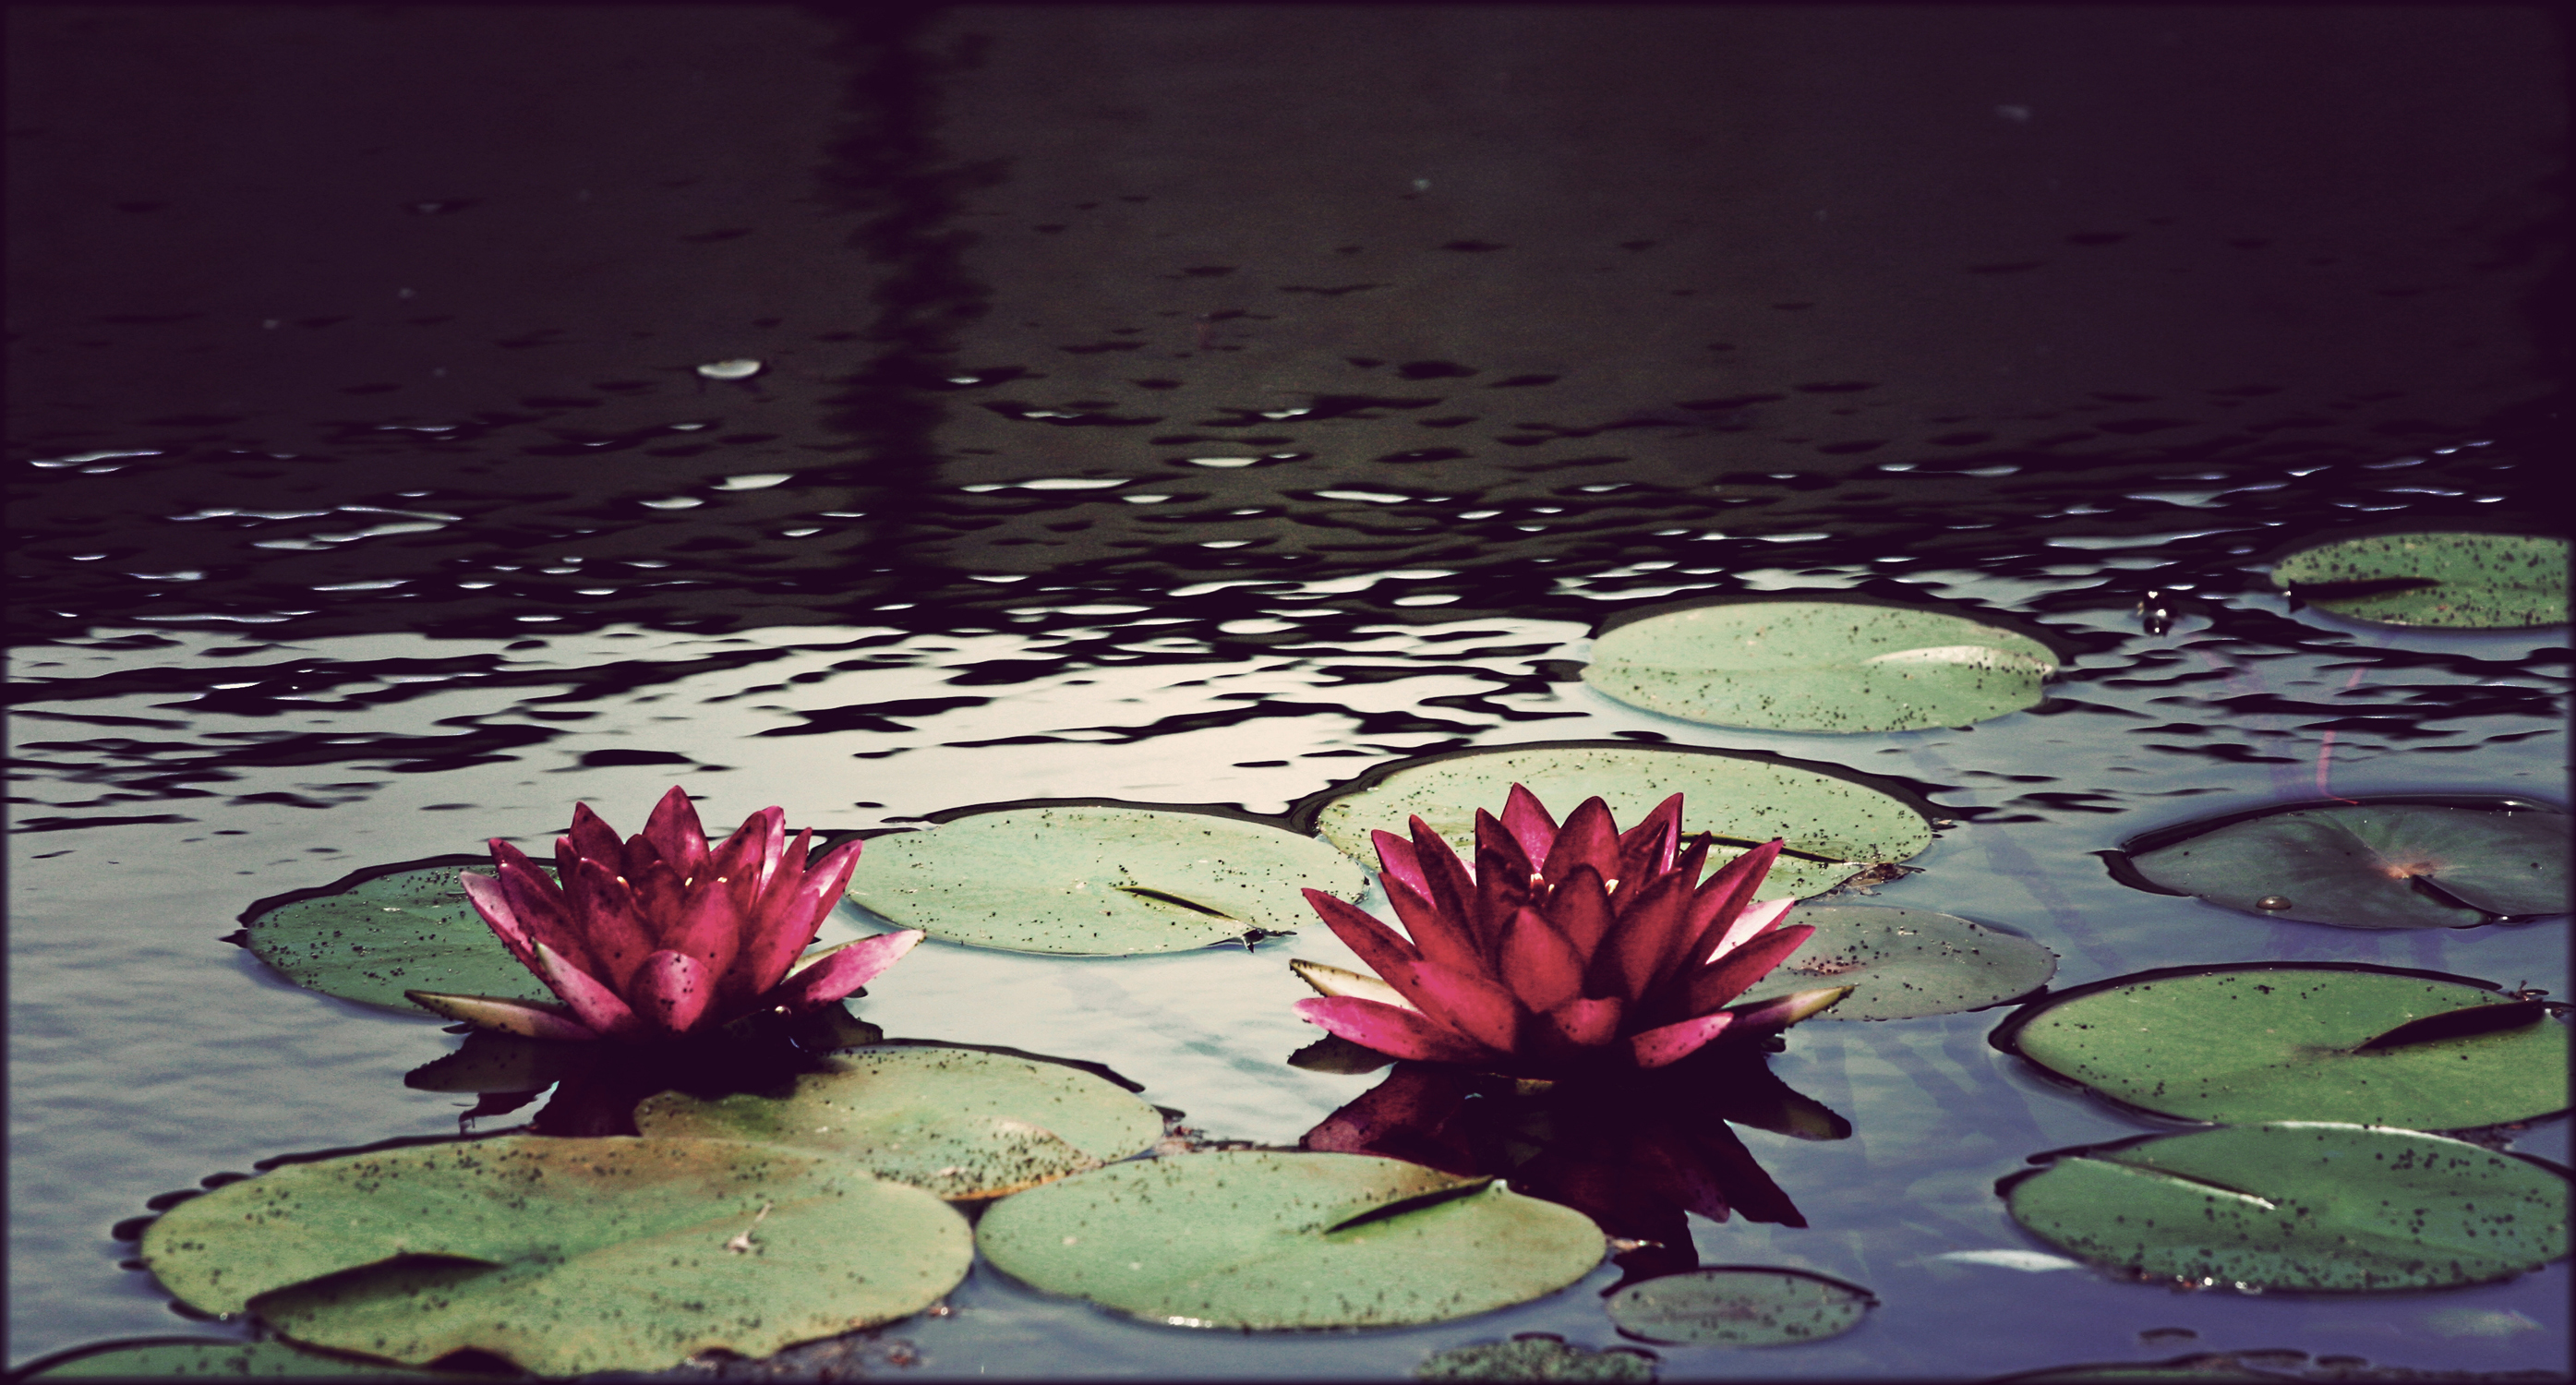 water Flowers ponds Plants HD Wallpaper